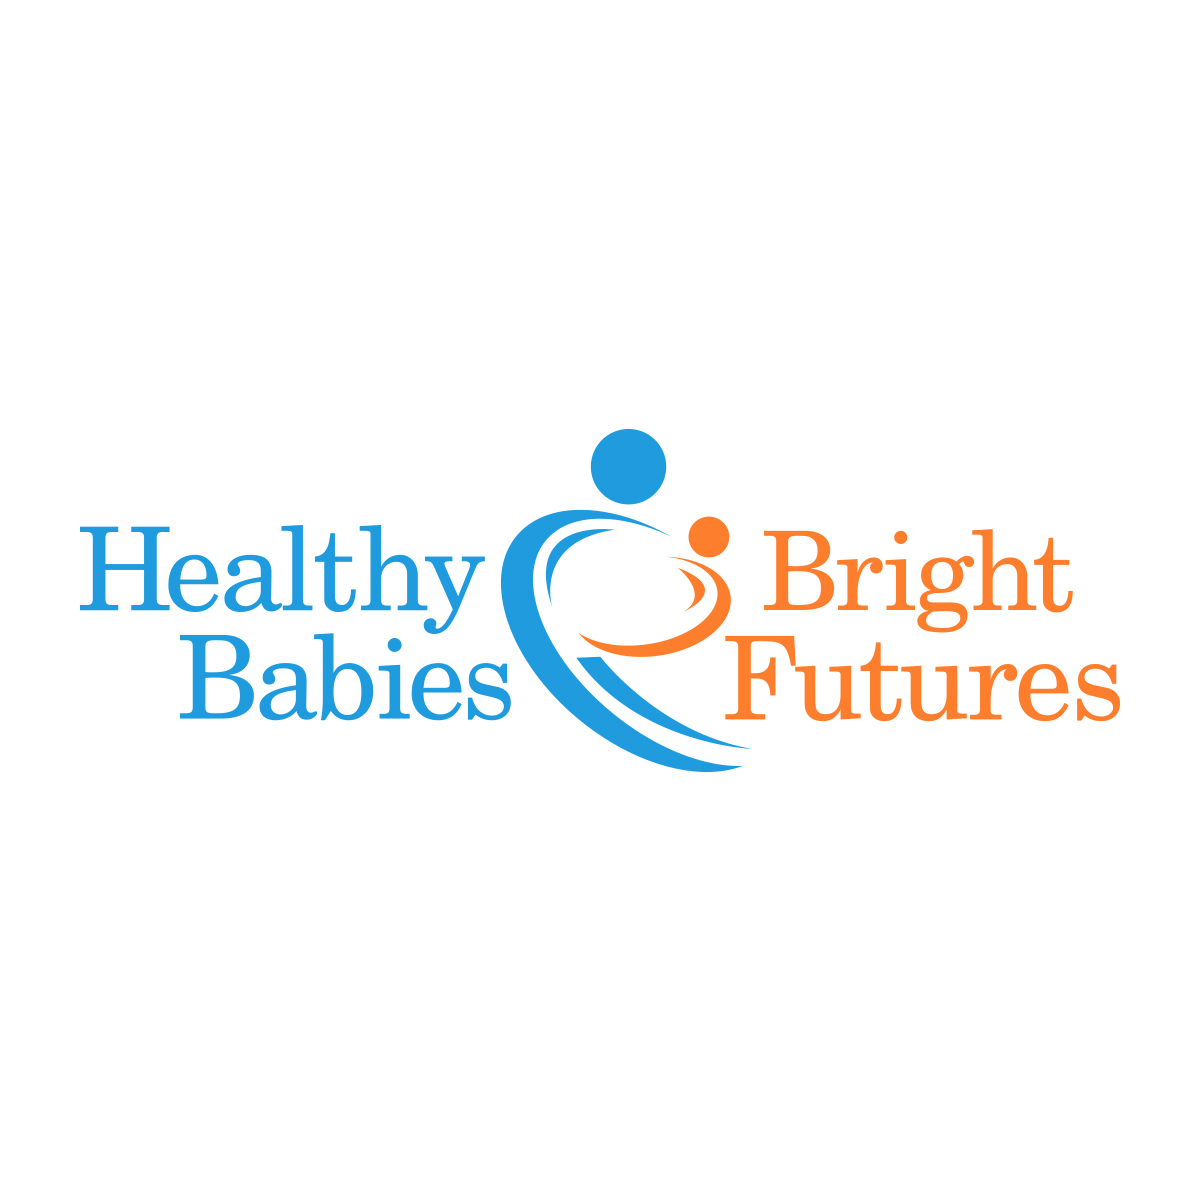 Healthy Babies, Bright Futures